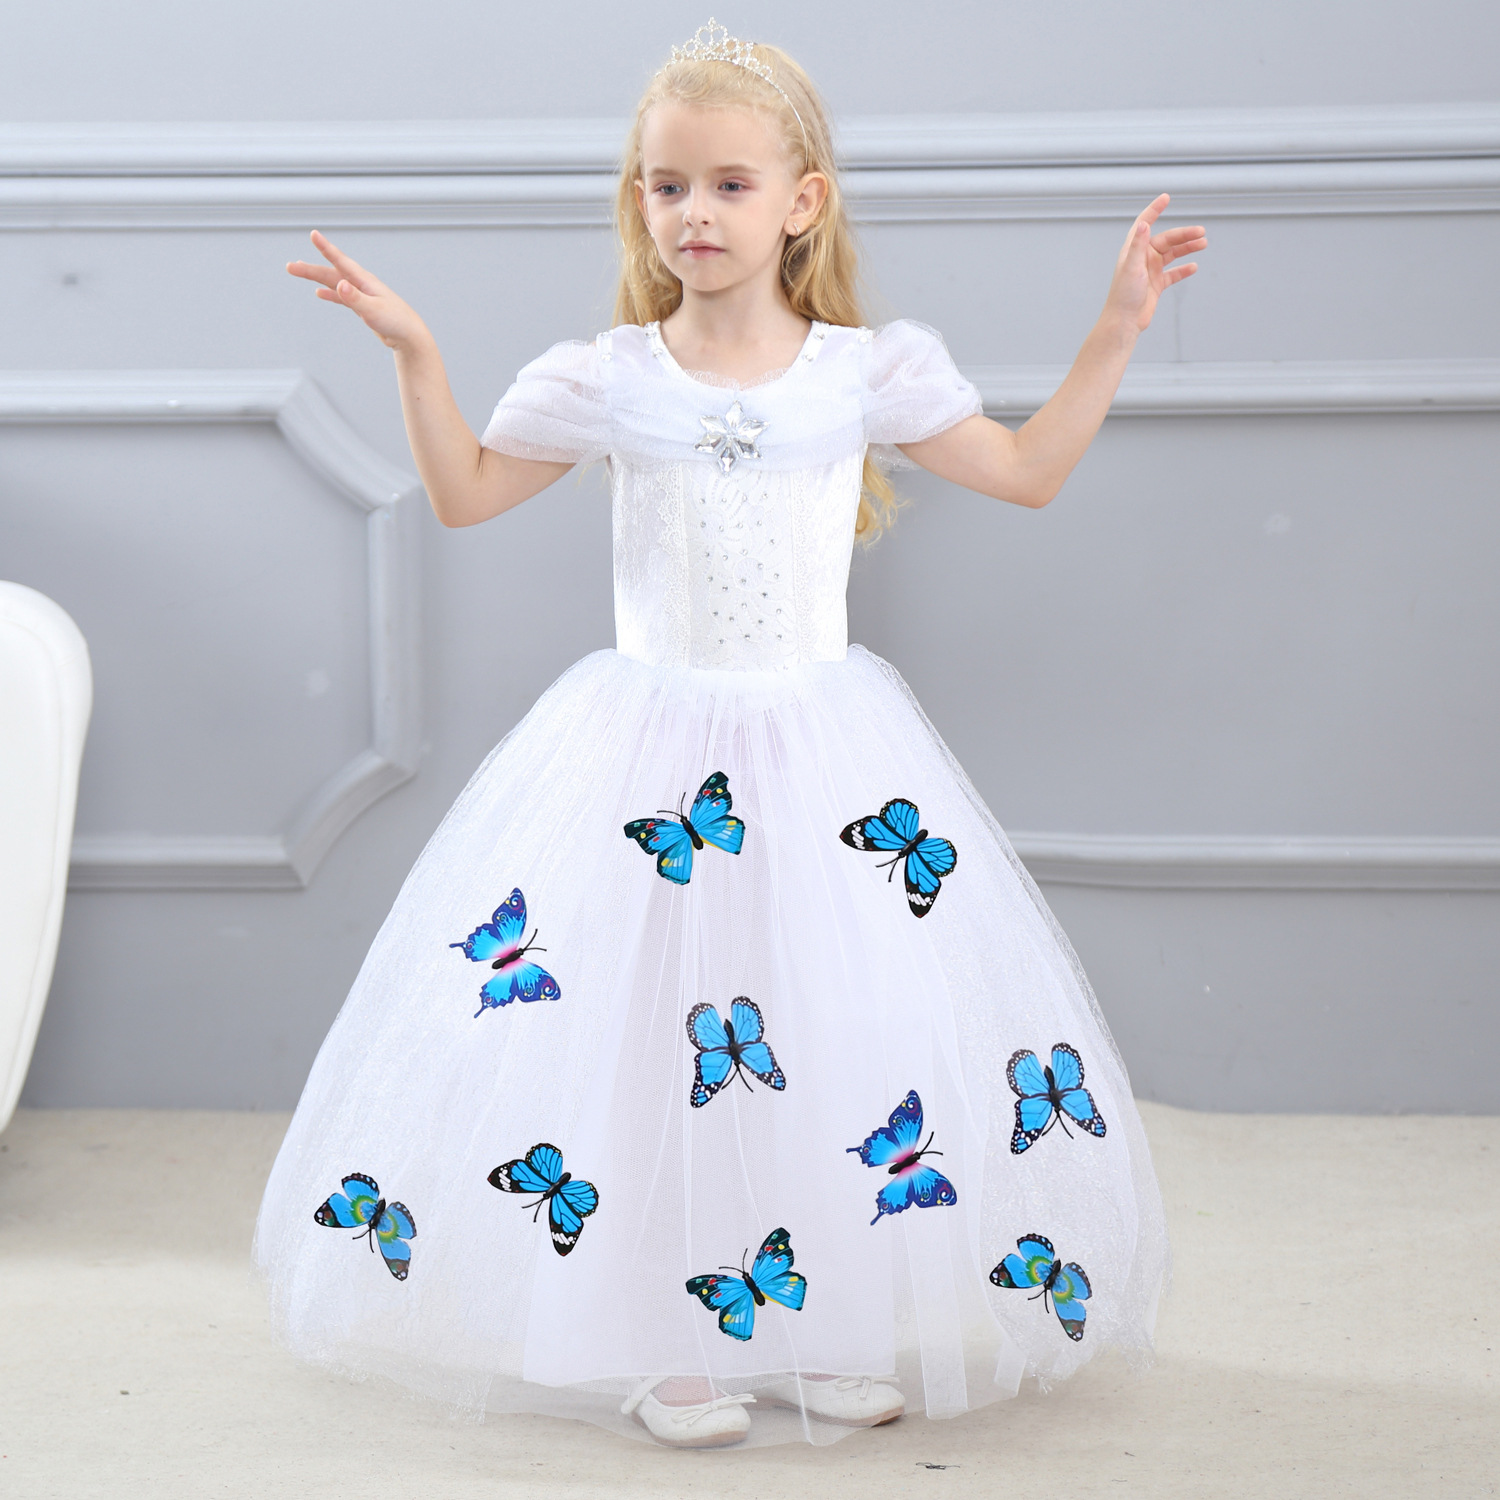 Children Fancy For Girls Princess Dress Cinderella Butterfly Snow White Dress Christmas Carnival Costume For Kids Party Dresses girls christmas xmas dresses kids girls princess party carnival tutu dress baby girl red new year fancy party dress up outfits